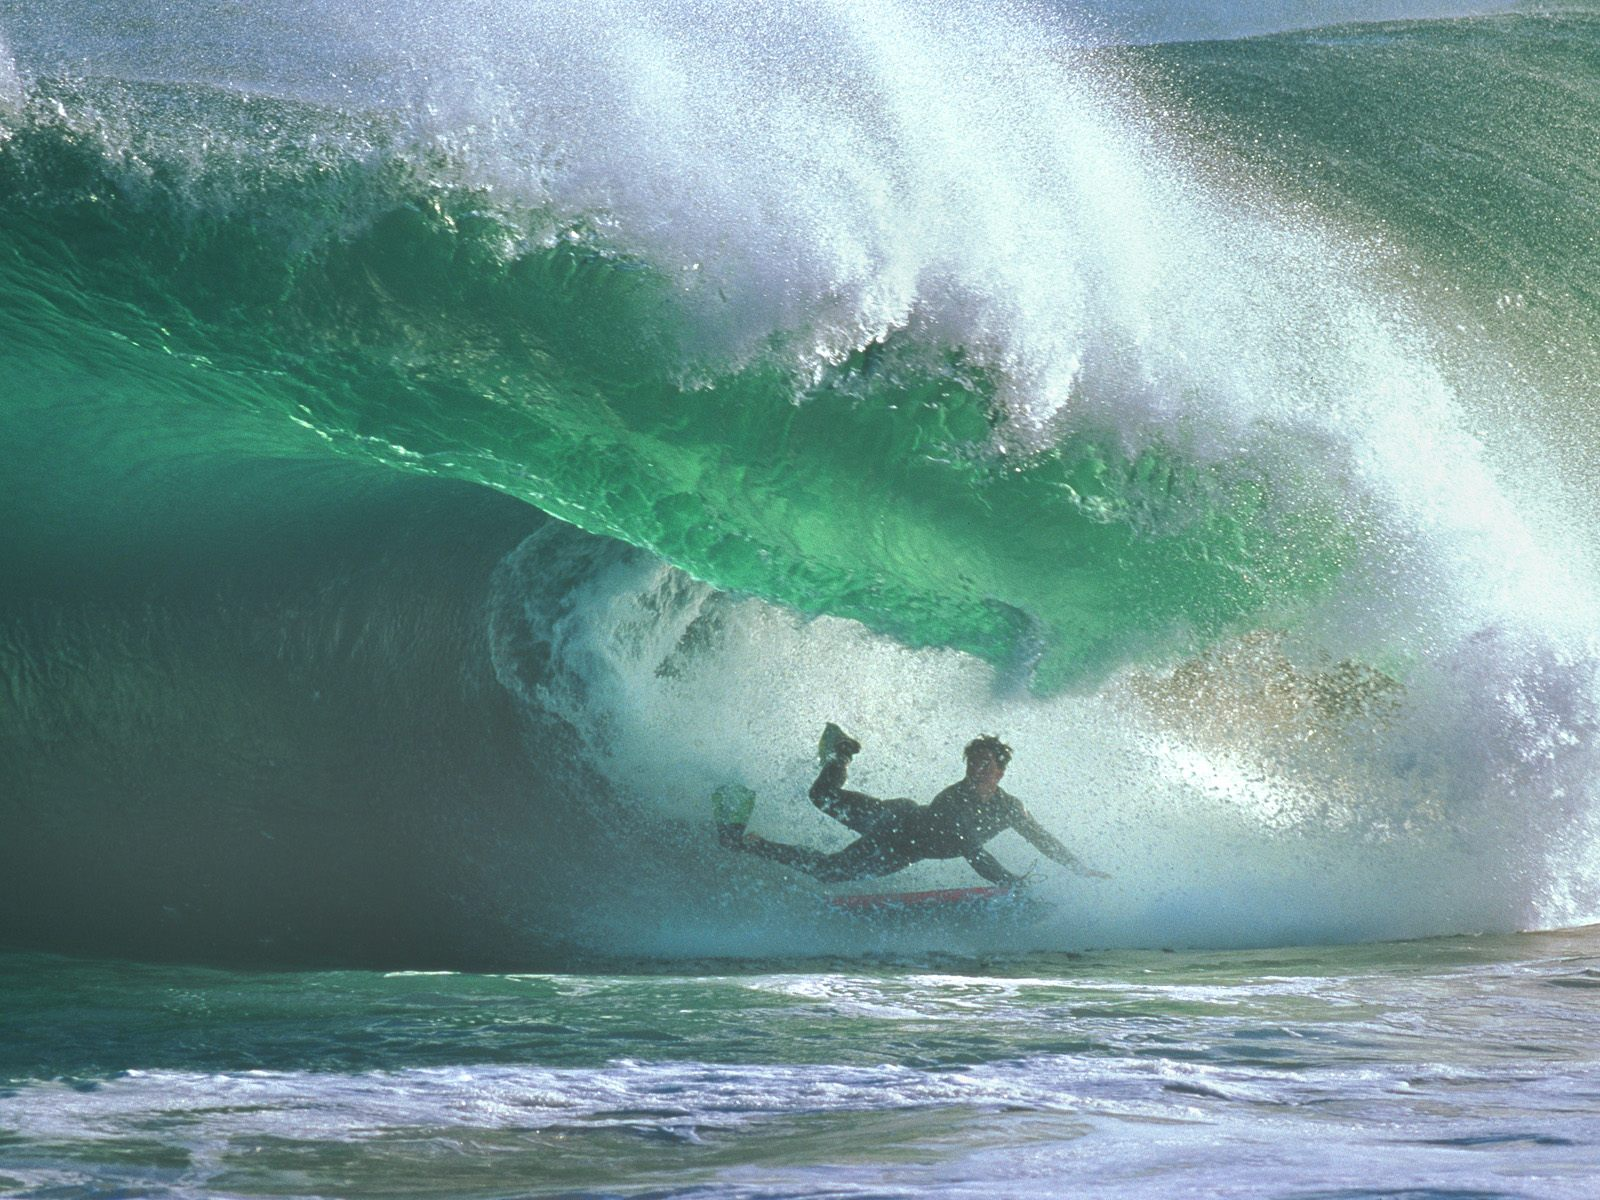 Download HQ Extreme Surfing wallpaper / 1600x1200